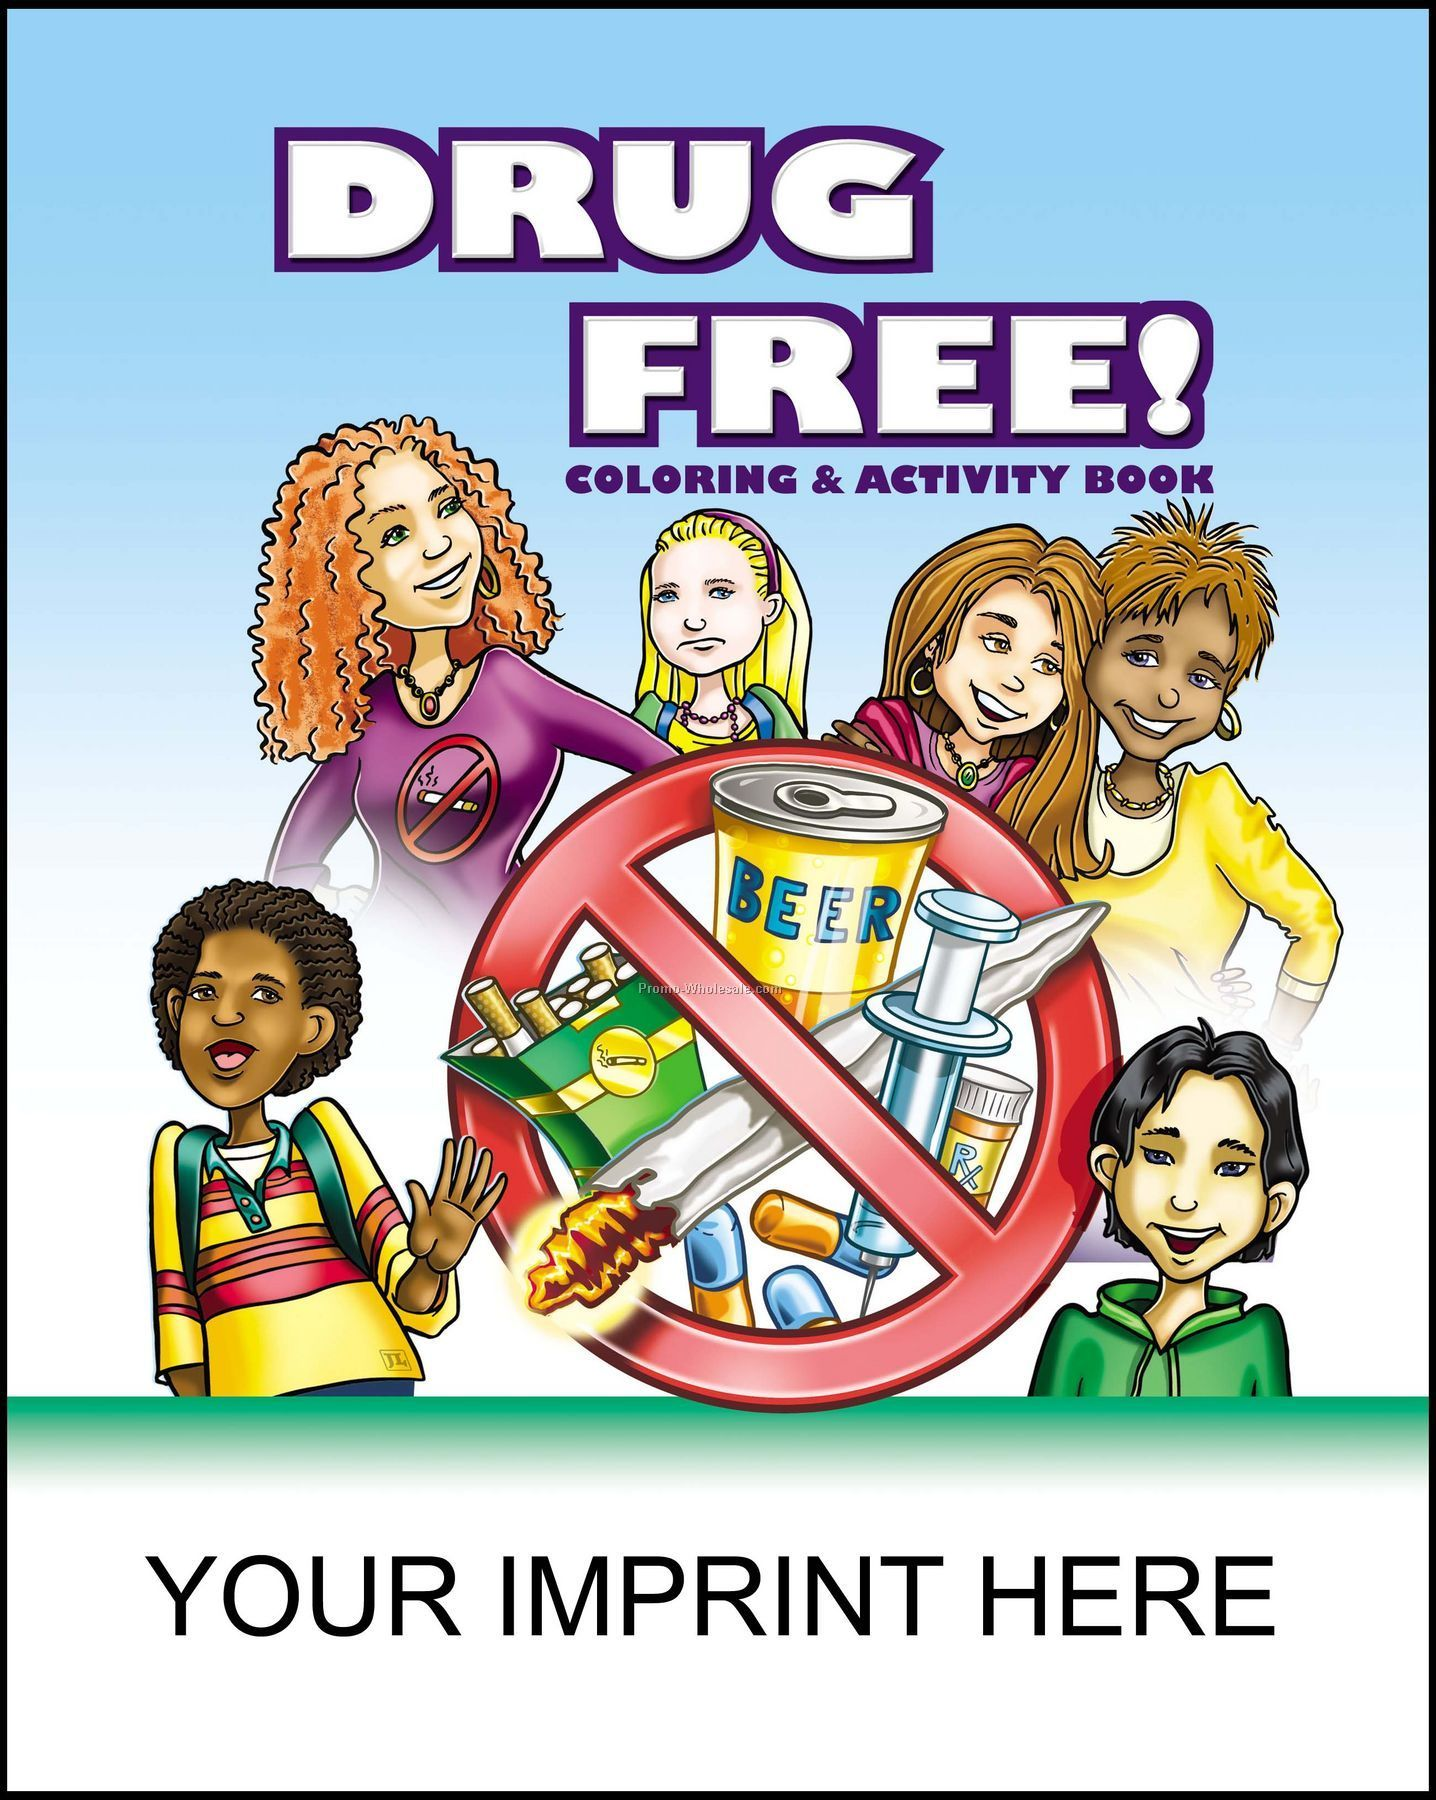 Drug Free Coloring & Activity